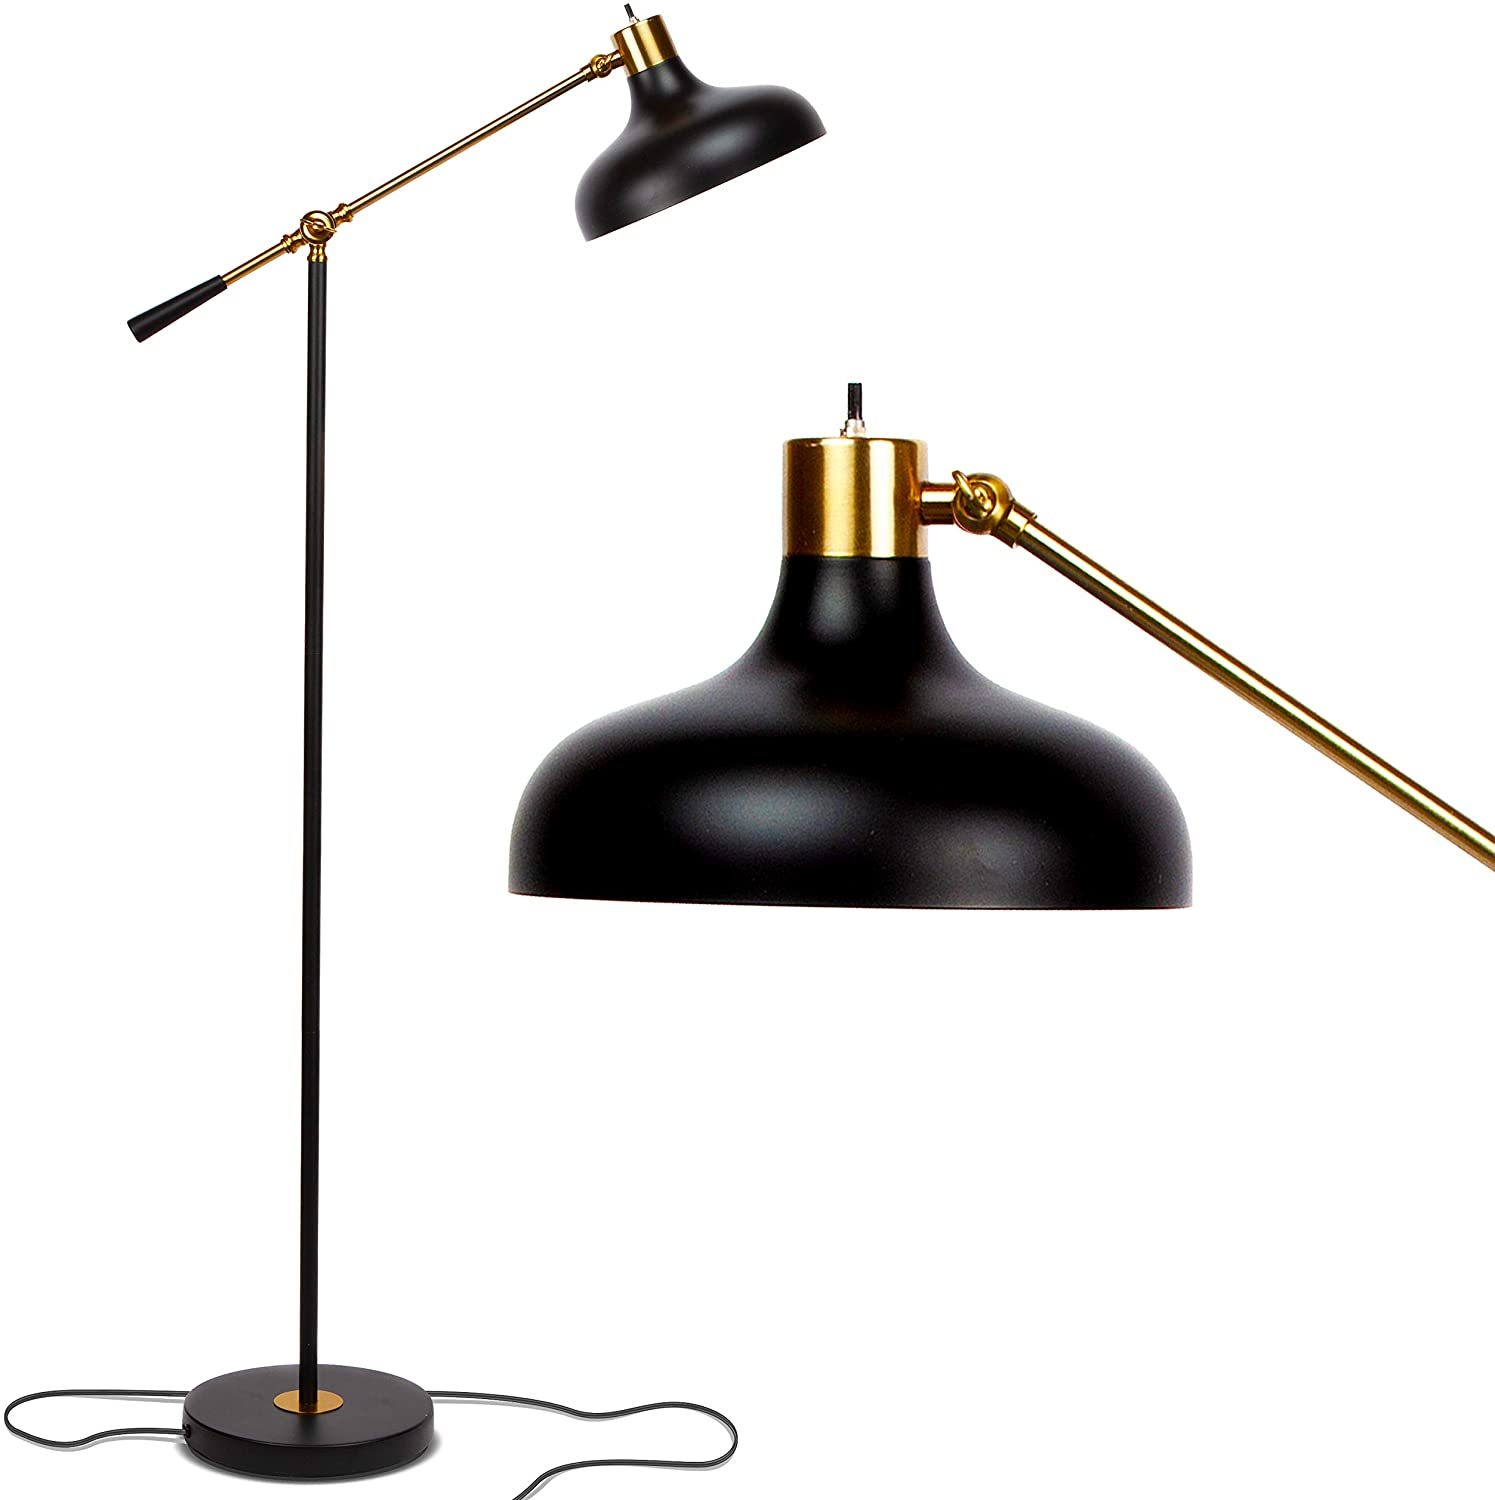 Brightech Wyatt - Industrial Floor Lamp for Living Rooms & Bedrooms - Rustic Farmhouse Reading Lamp - Standing, Adjustable Arm Indoor Pole Lamp for Crafts & Tasks